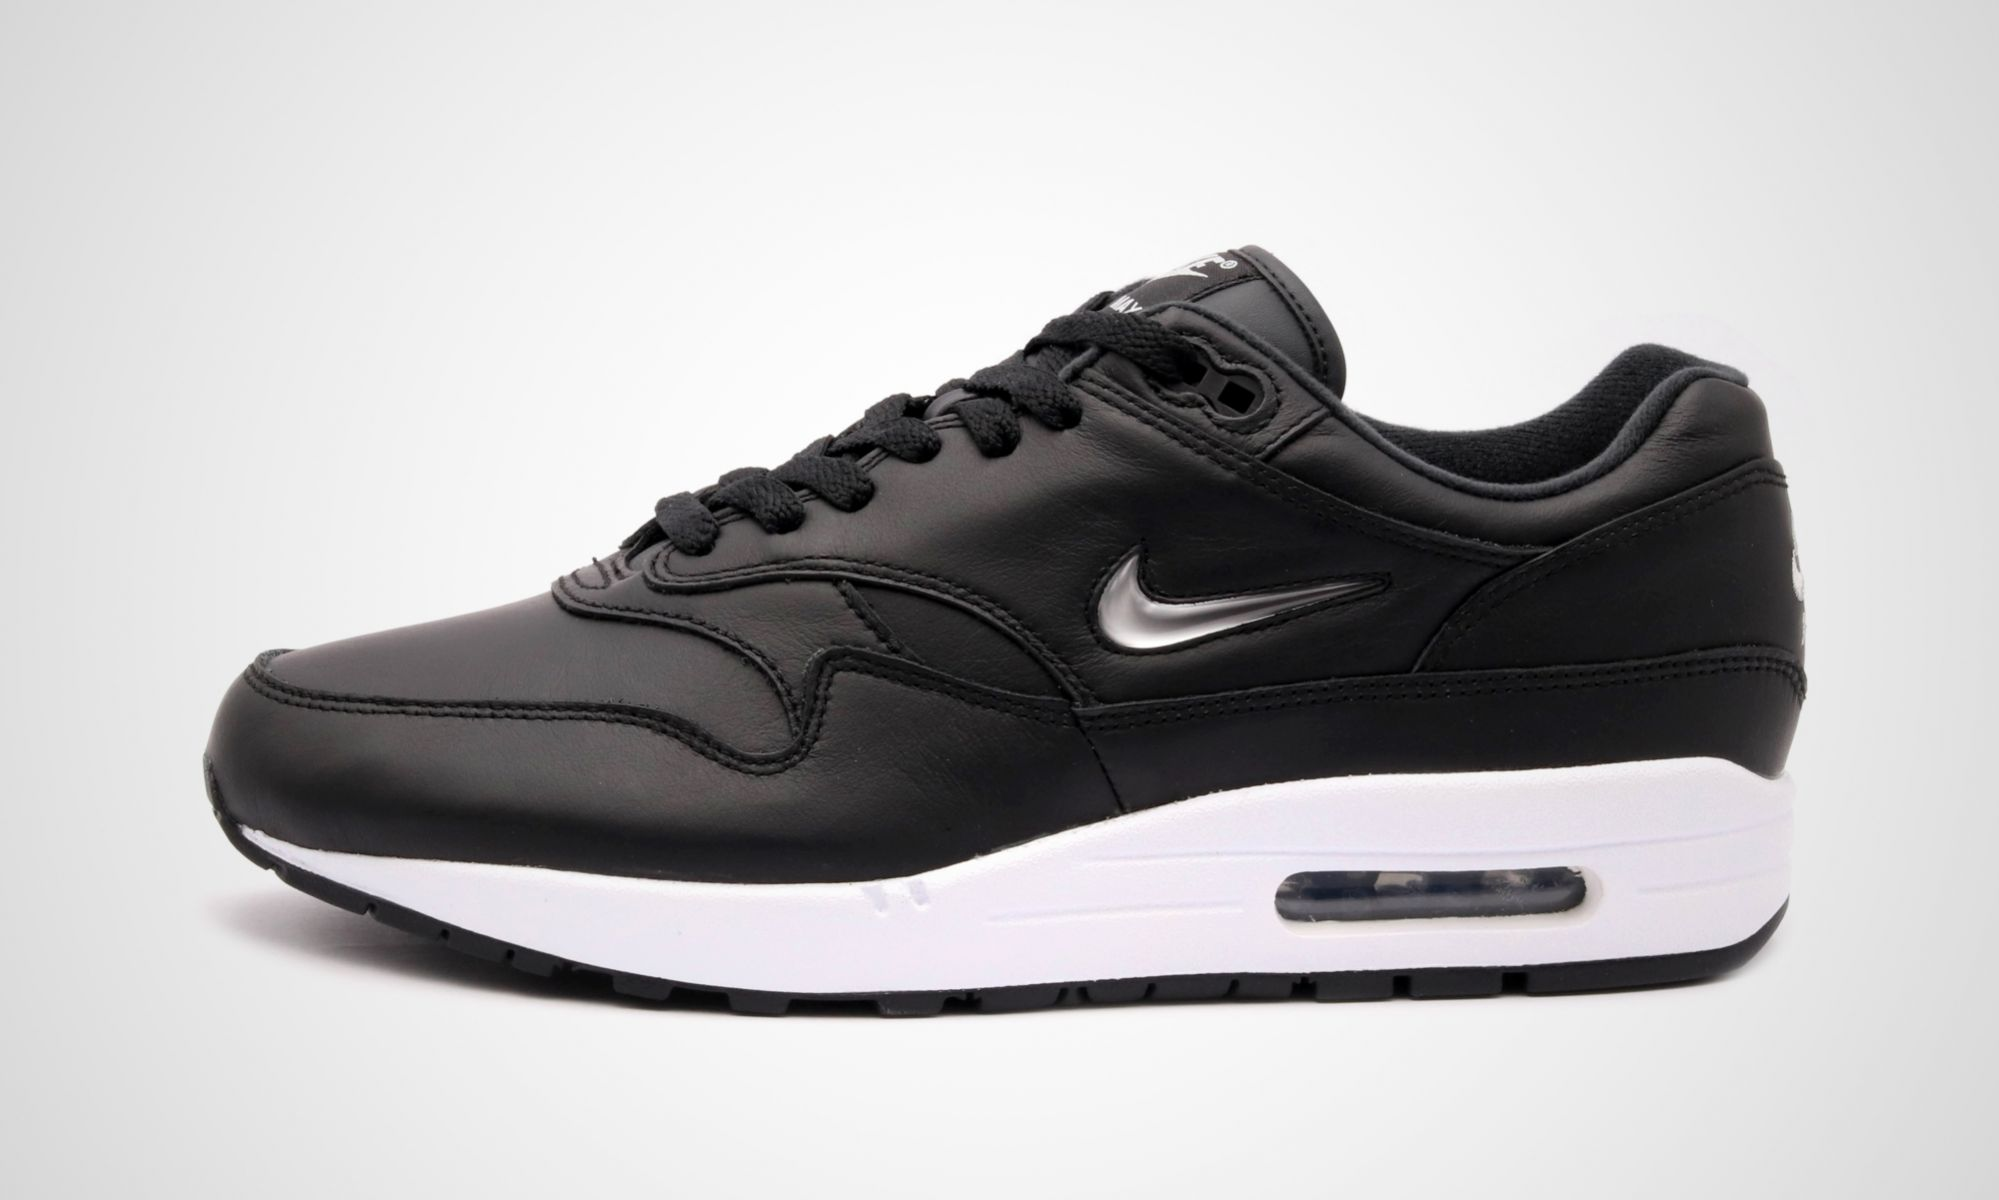 separation shoes 30fbc b26c9 Der offizielle Releasetermin des Nike Air Max 1 Jewel Premium Black ist am  24. August um 0900. Der Retailpreis des Nike Air Max 1 Jewel Premium Black  liegt ...